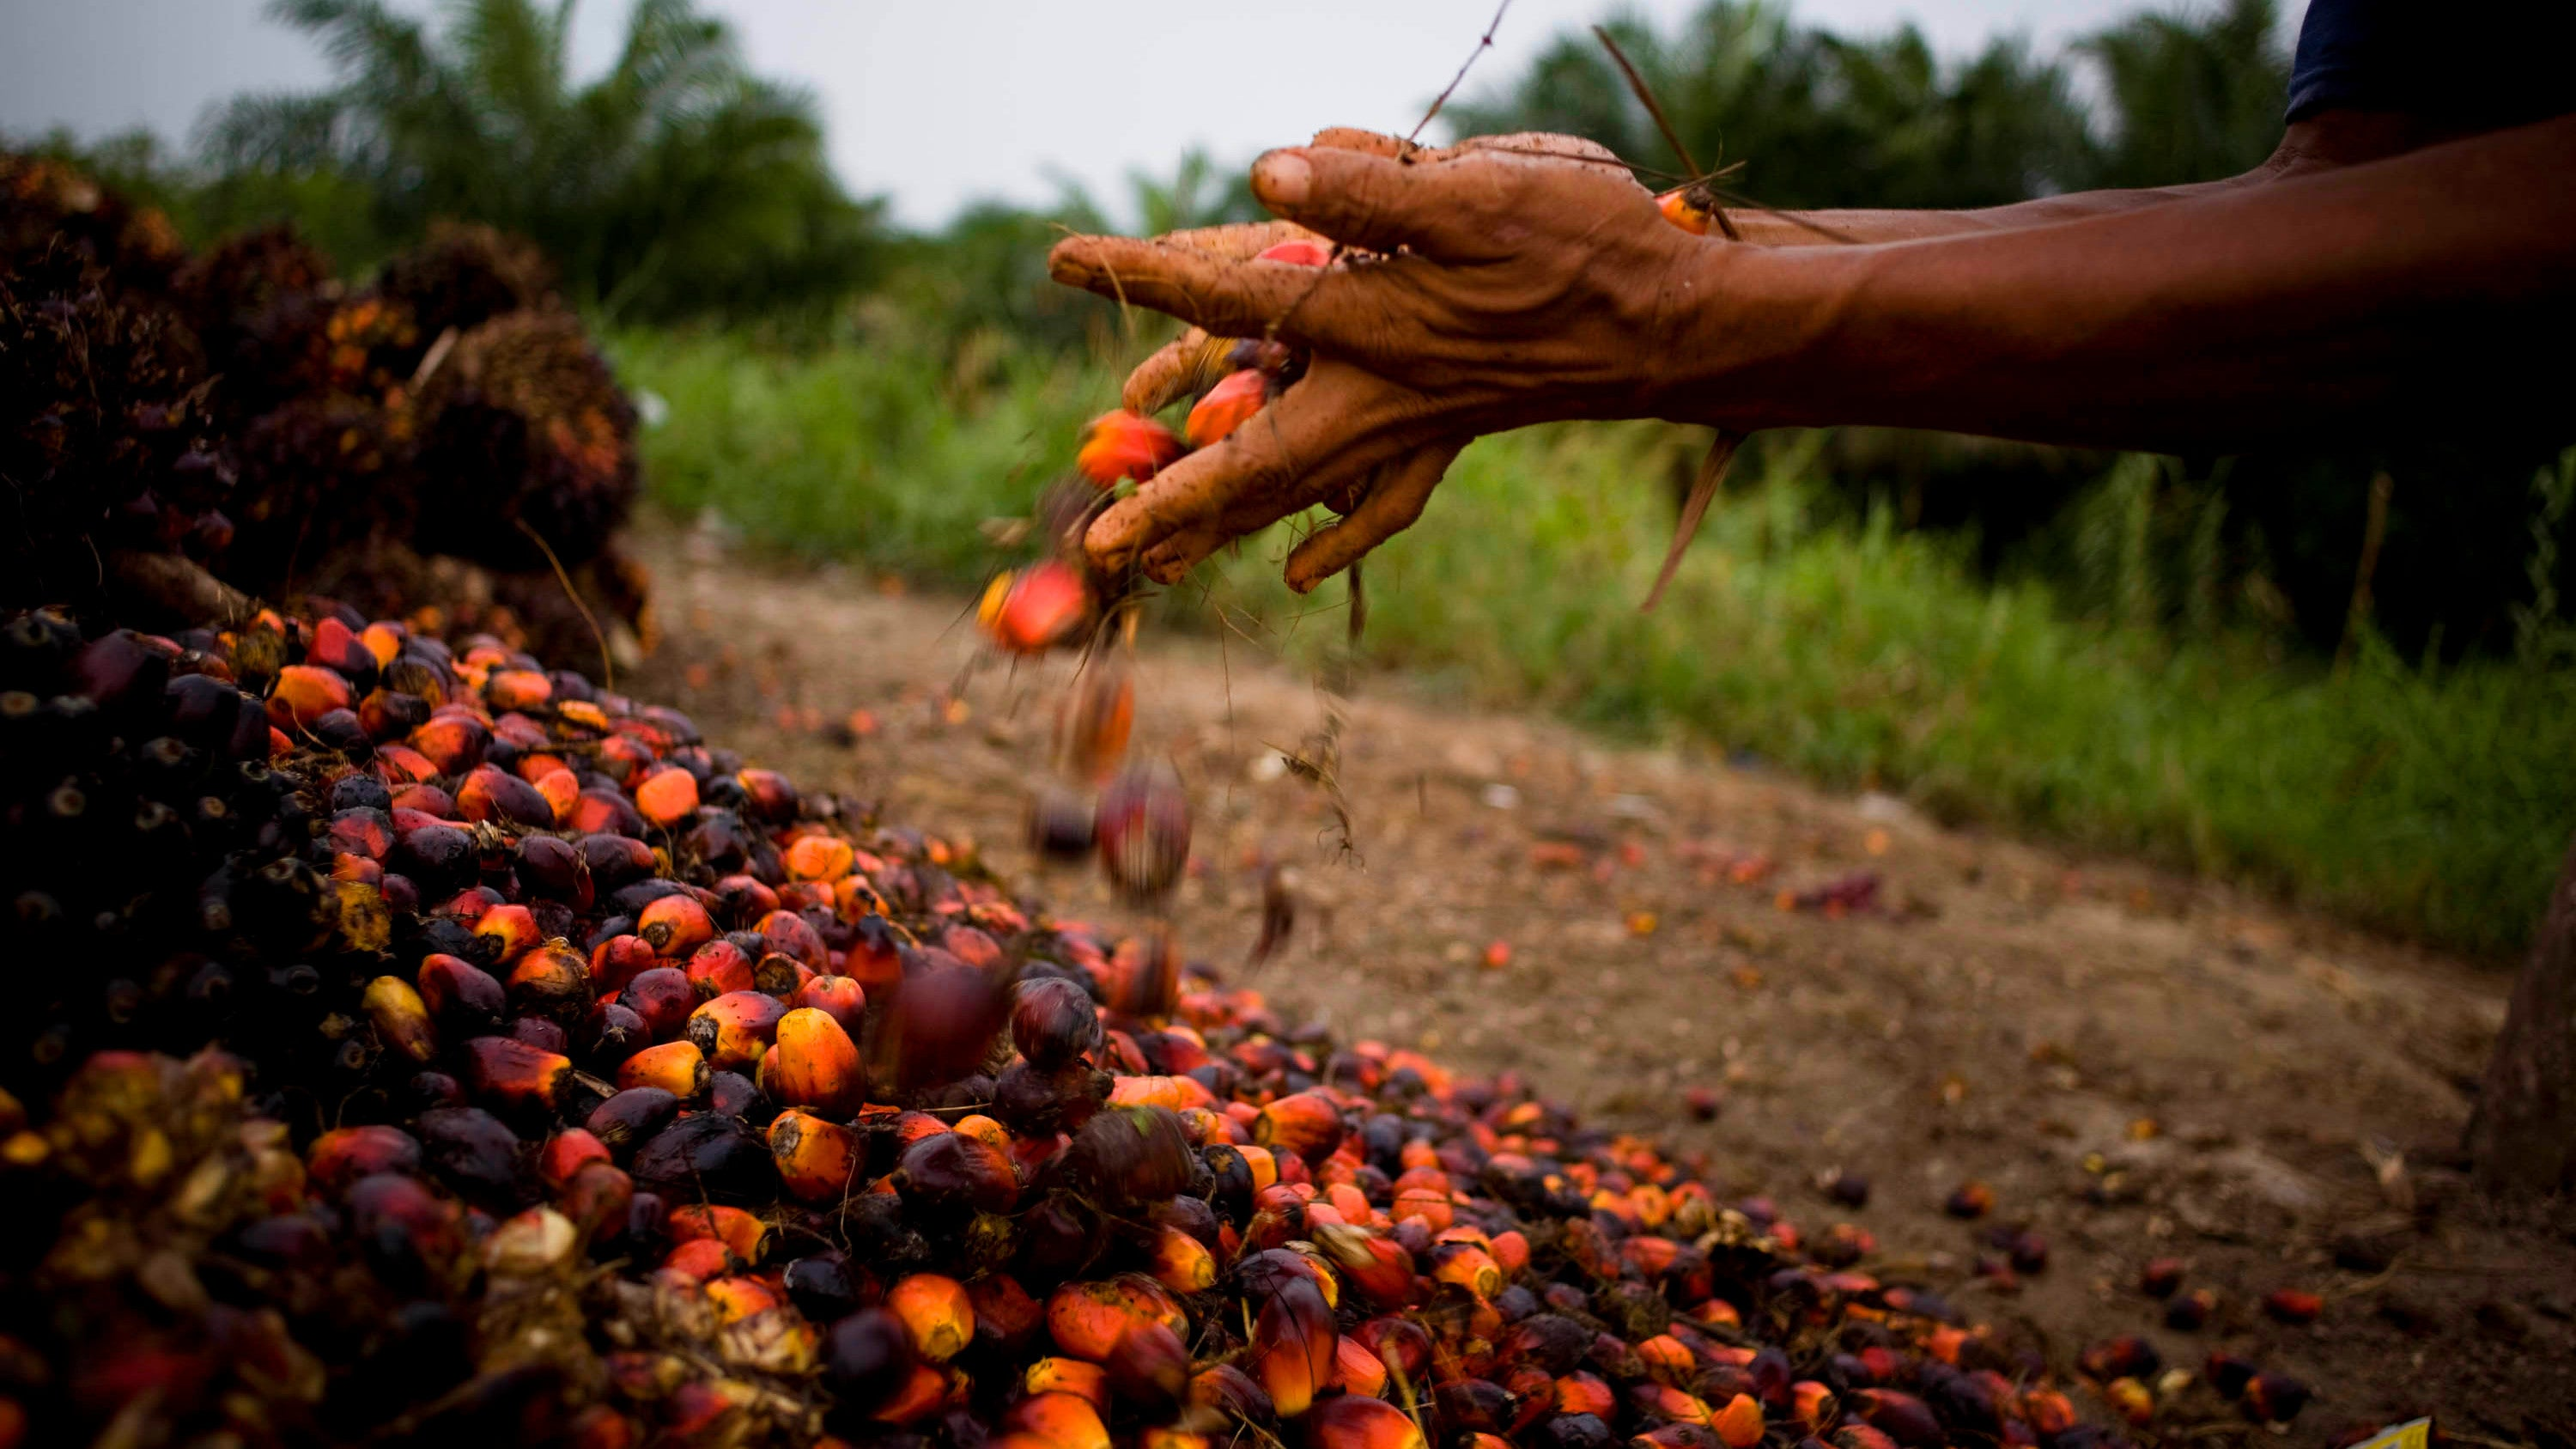 What's So Terrible About Palm Oil?